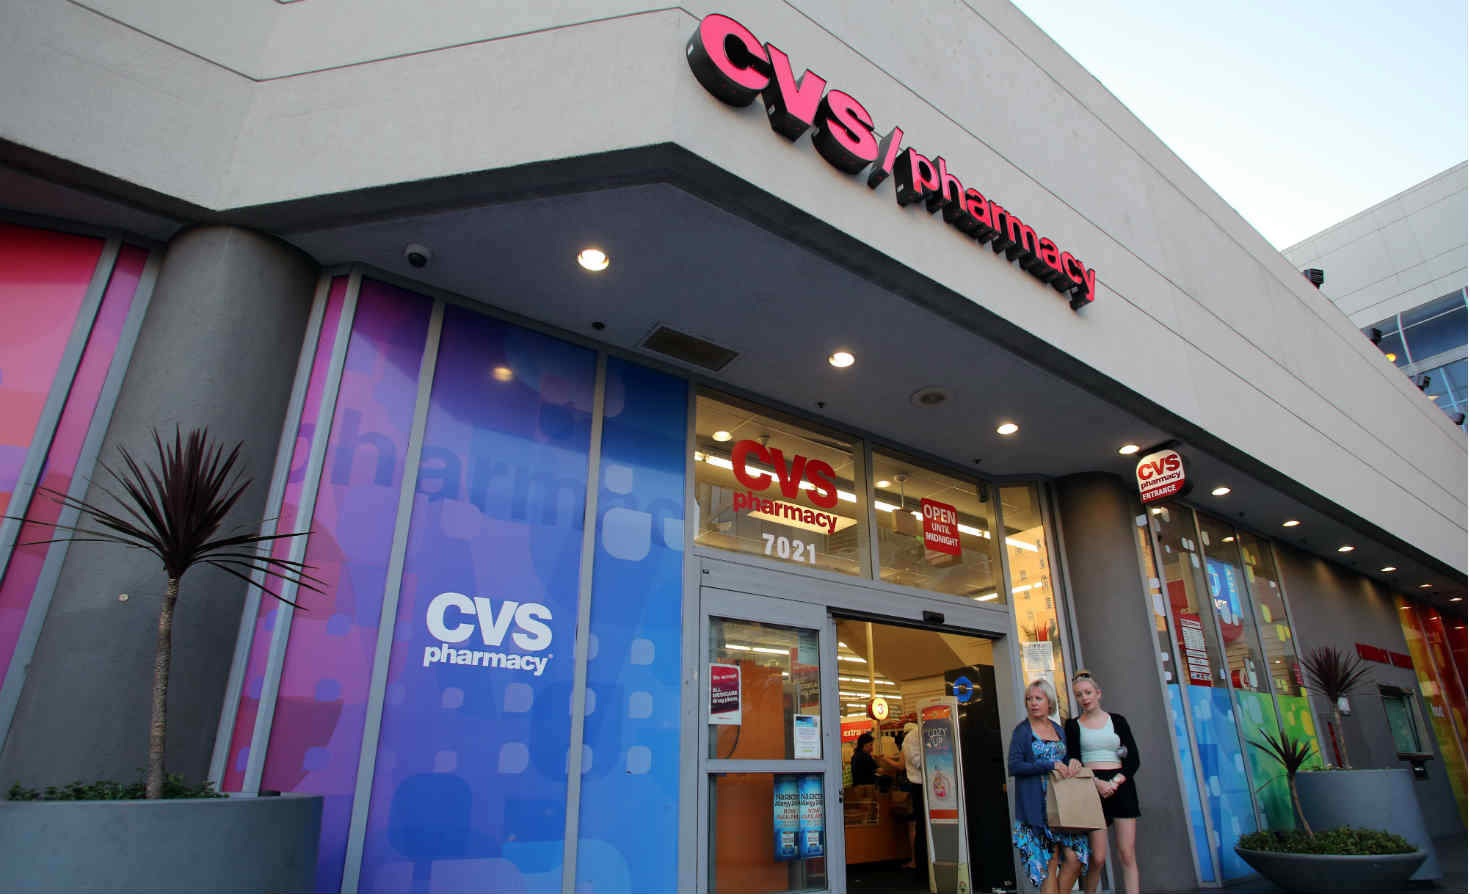 Cvs Open On Christmas.Cvs Health And Wba Race To Rx For Safer Chemicals Greenbiz